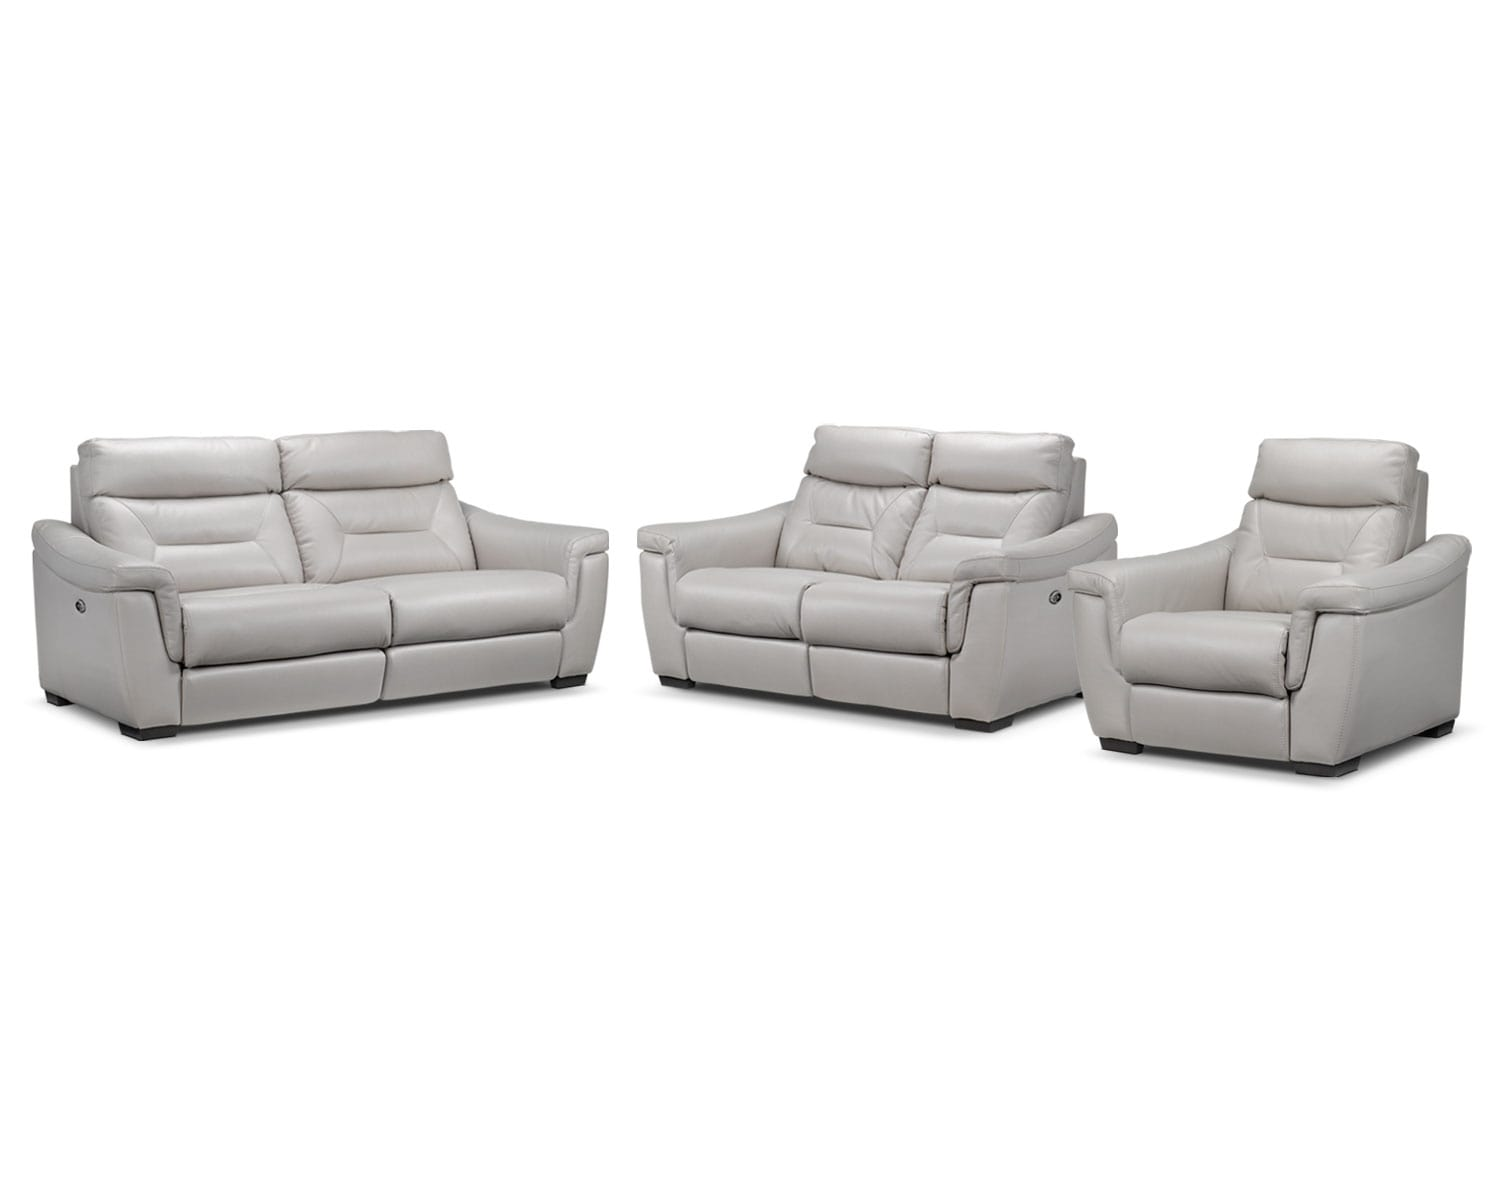 Ralston Power Reclining Sofa, Power Reclining Loveseat and Power Recliner Set - Silver-Grey